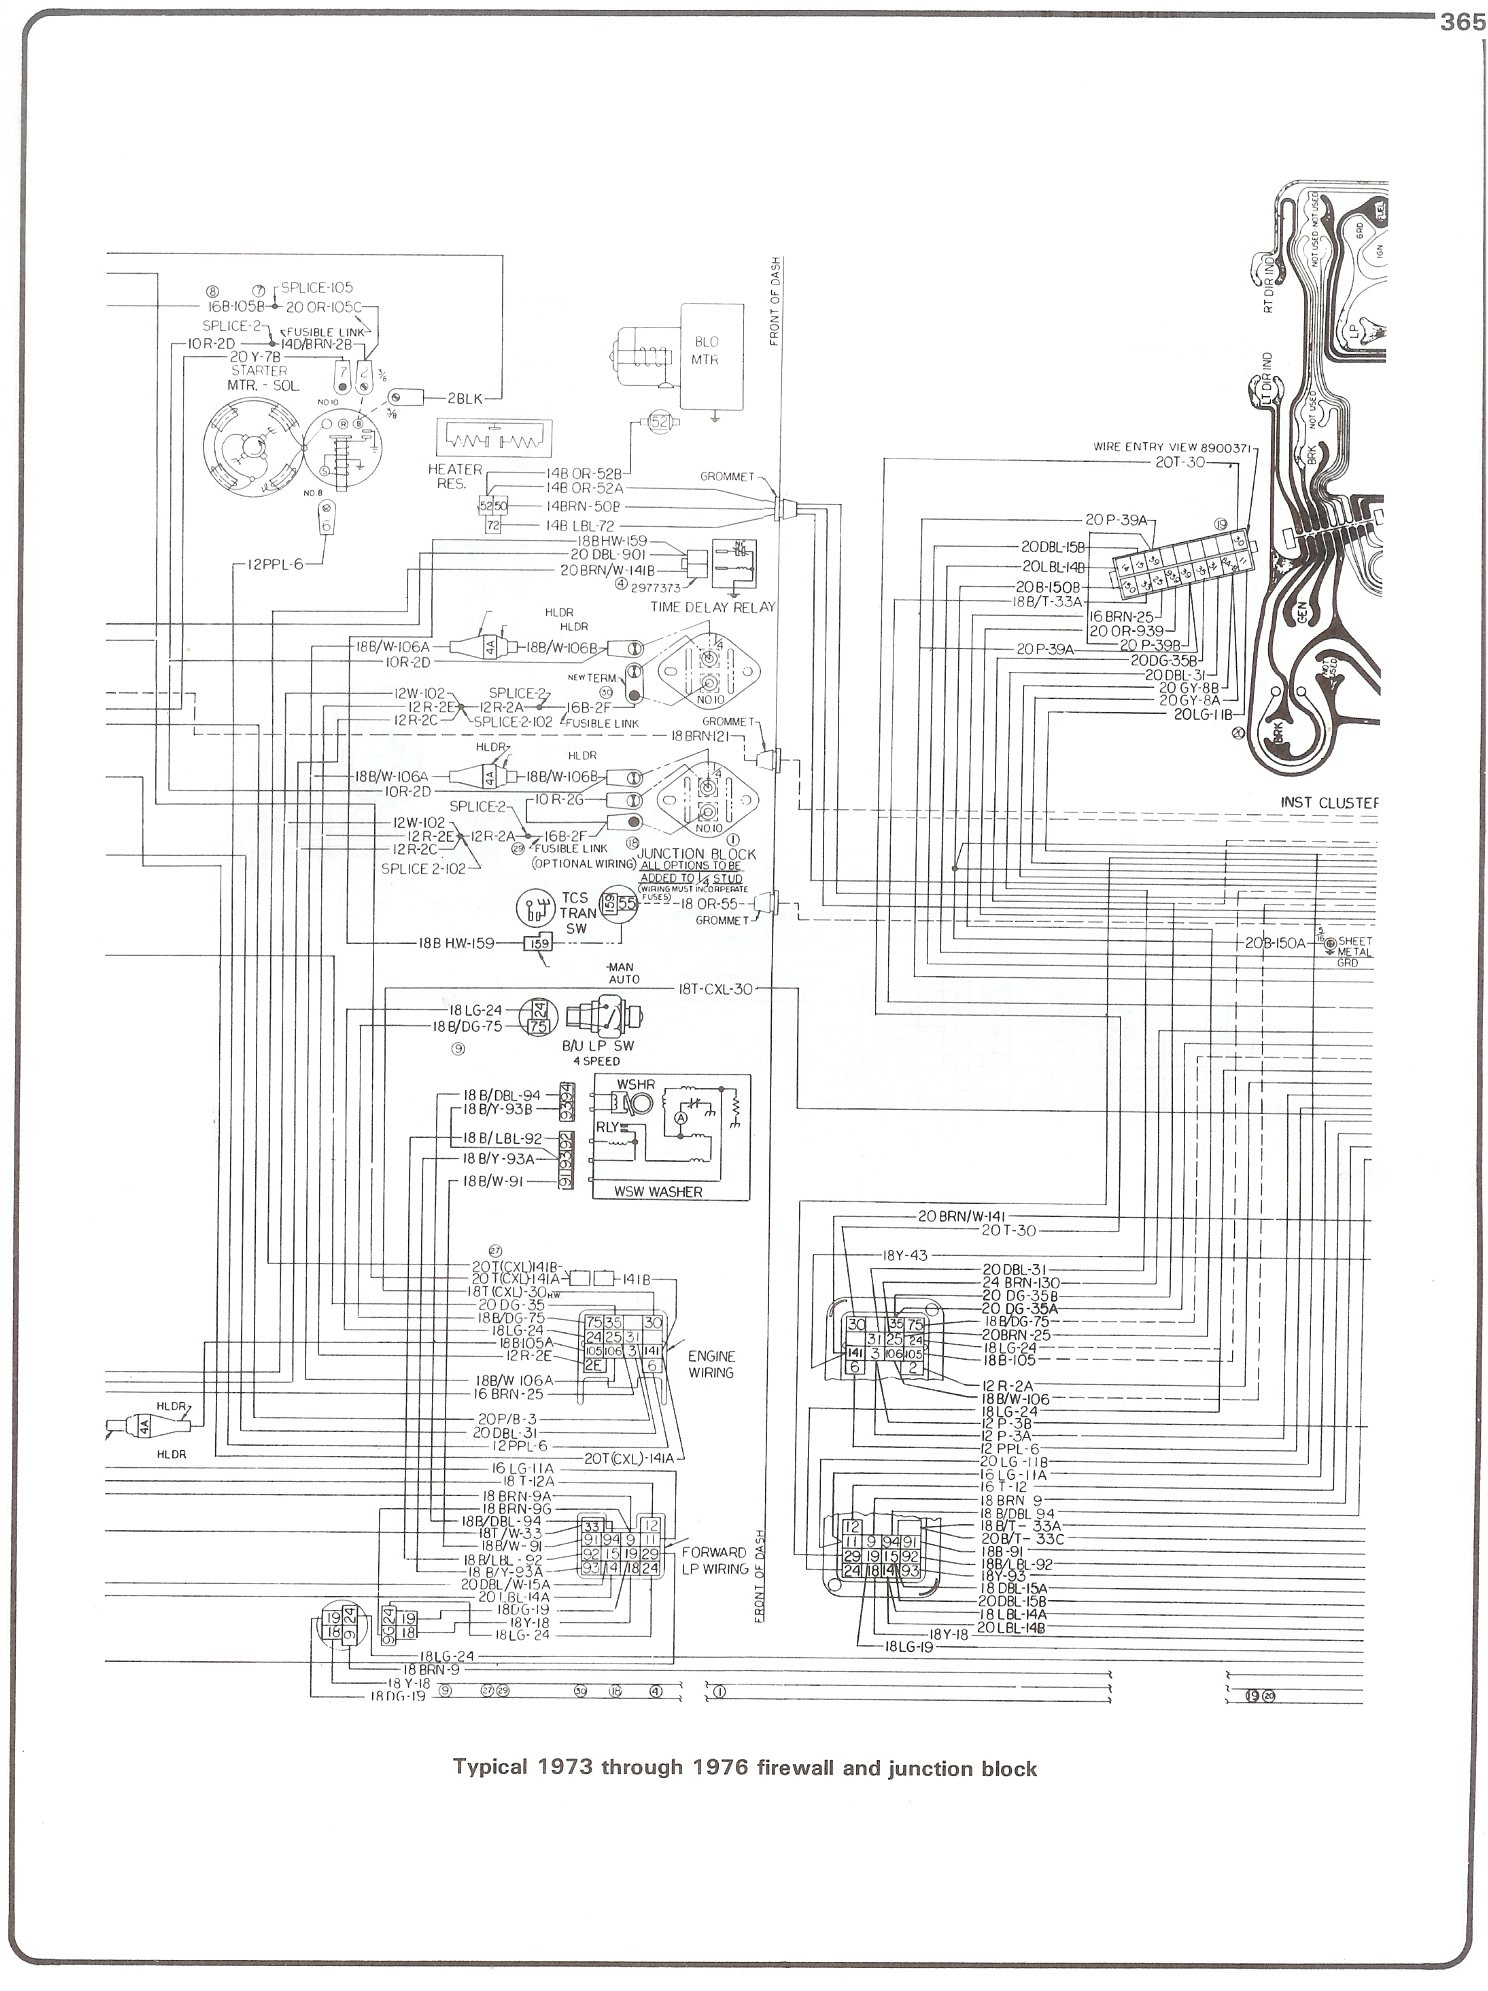 79 Chevy Steering Column Wiring Library Ford Bronco Headlight Diagram Complete 73 87 Diagrams Rh Forum 87chevytrucks Com 1979 Truck Instrument Cluster